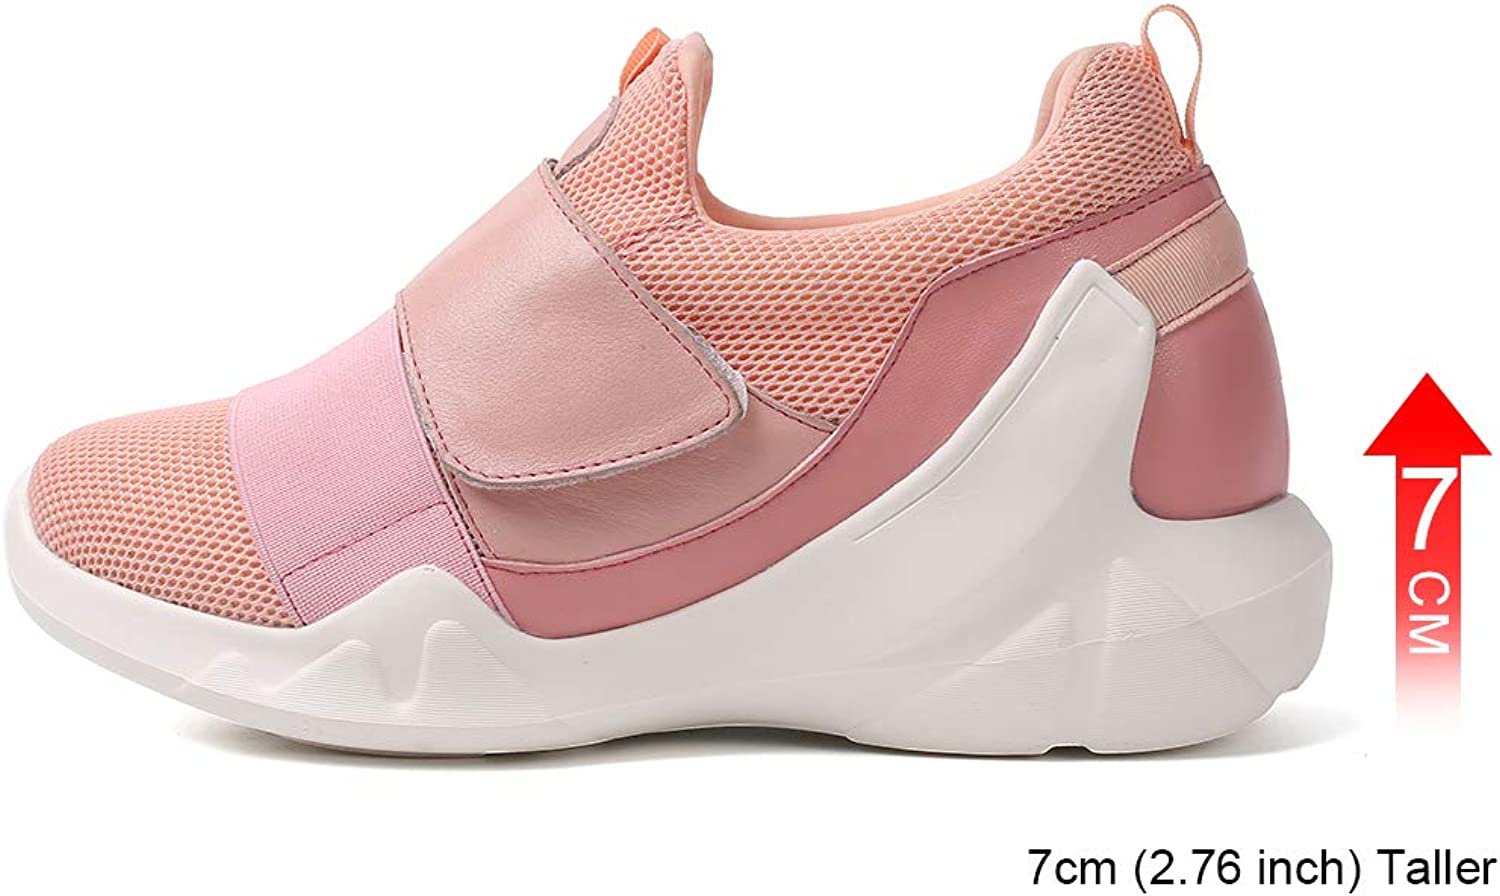 Hesion Increased Women's shoes Stretch Fabric Fashion New Casual Increase Sports shoes 7 cm Pink